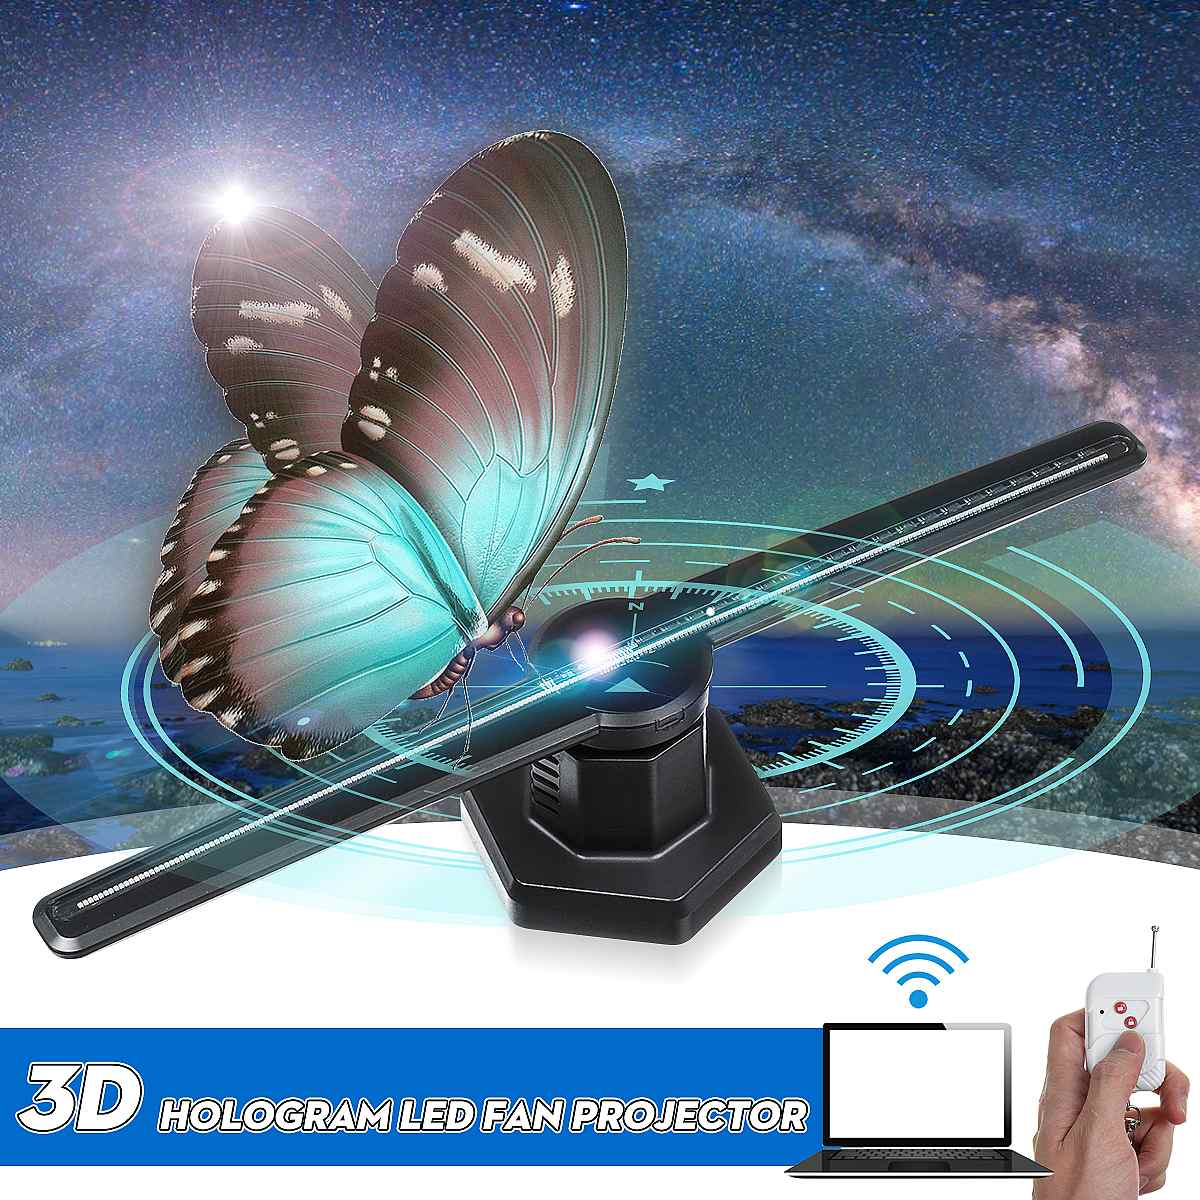 AC 100-240V 224LED Wifi 3D Holographic Projector Hologram Player LED Display Imaging Lamp Fan Advertising Light Remote Control